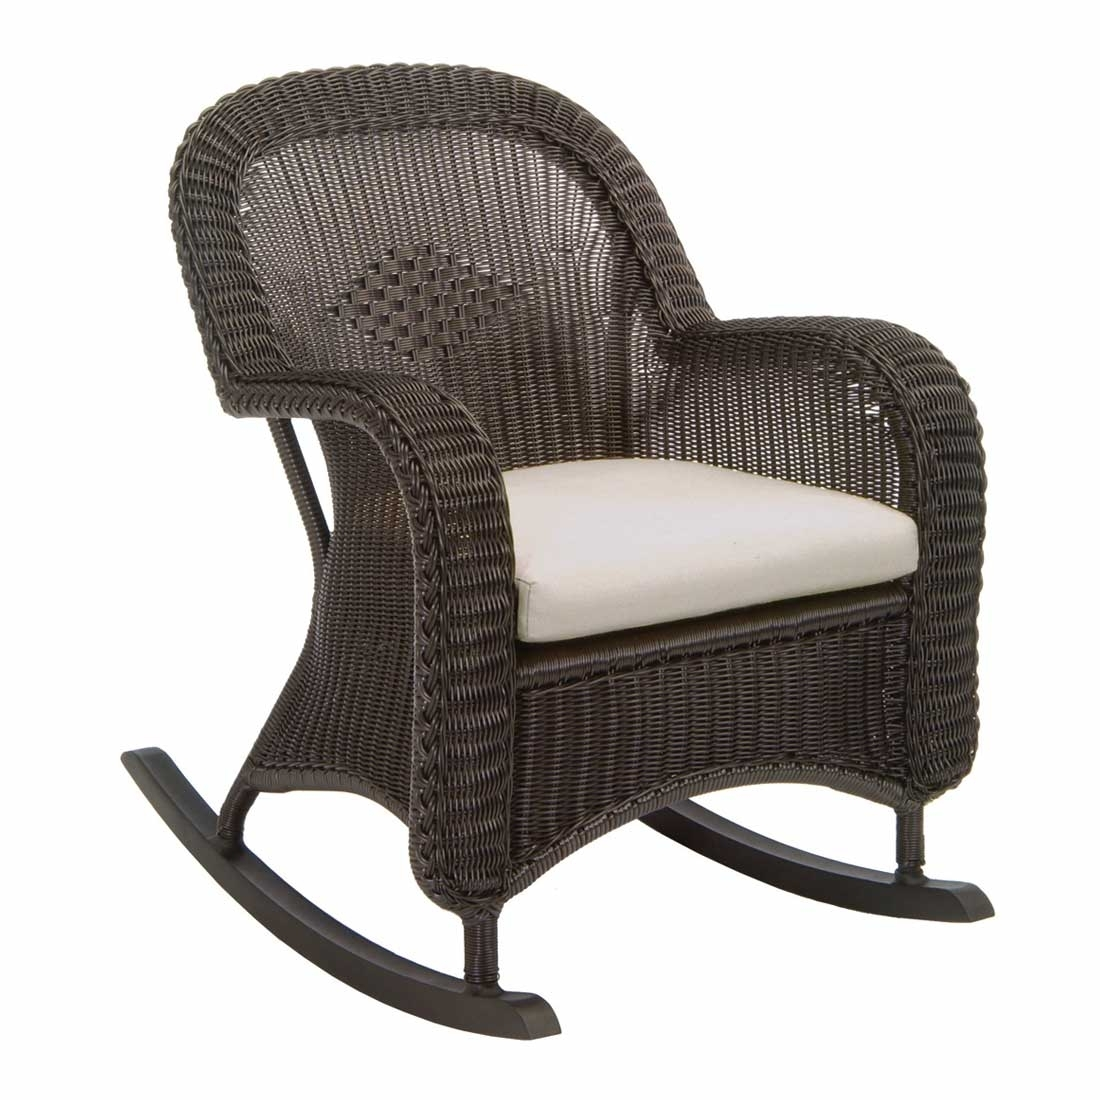 Classic Outdoor Wicker Rocking Chair Regarding Resin Wicker Rocking Chairs (#4 of 15)